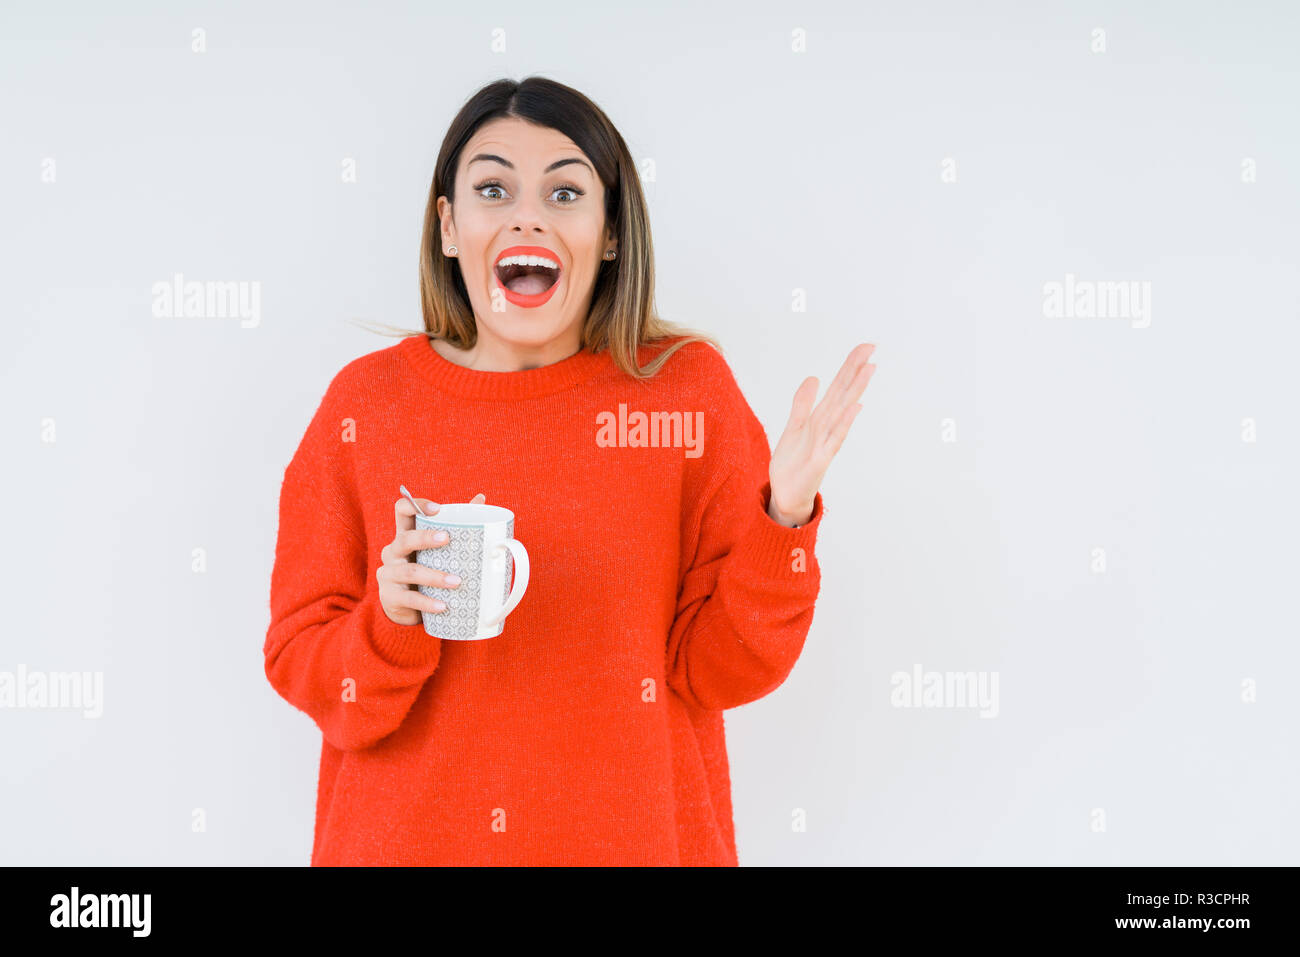 01d86622449 Young woman drinking cup of coffee over isolated background very happy and  excited, winner expression celebrating victory screaming with big smile and